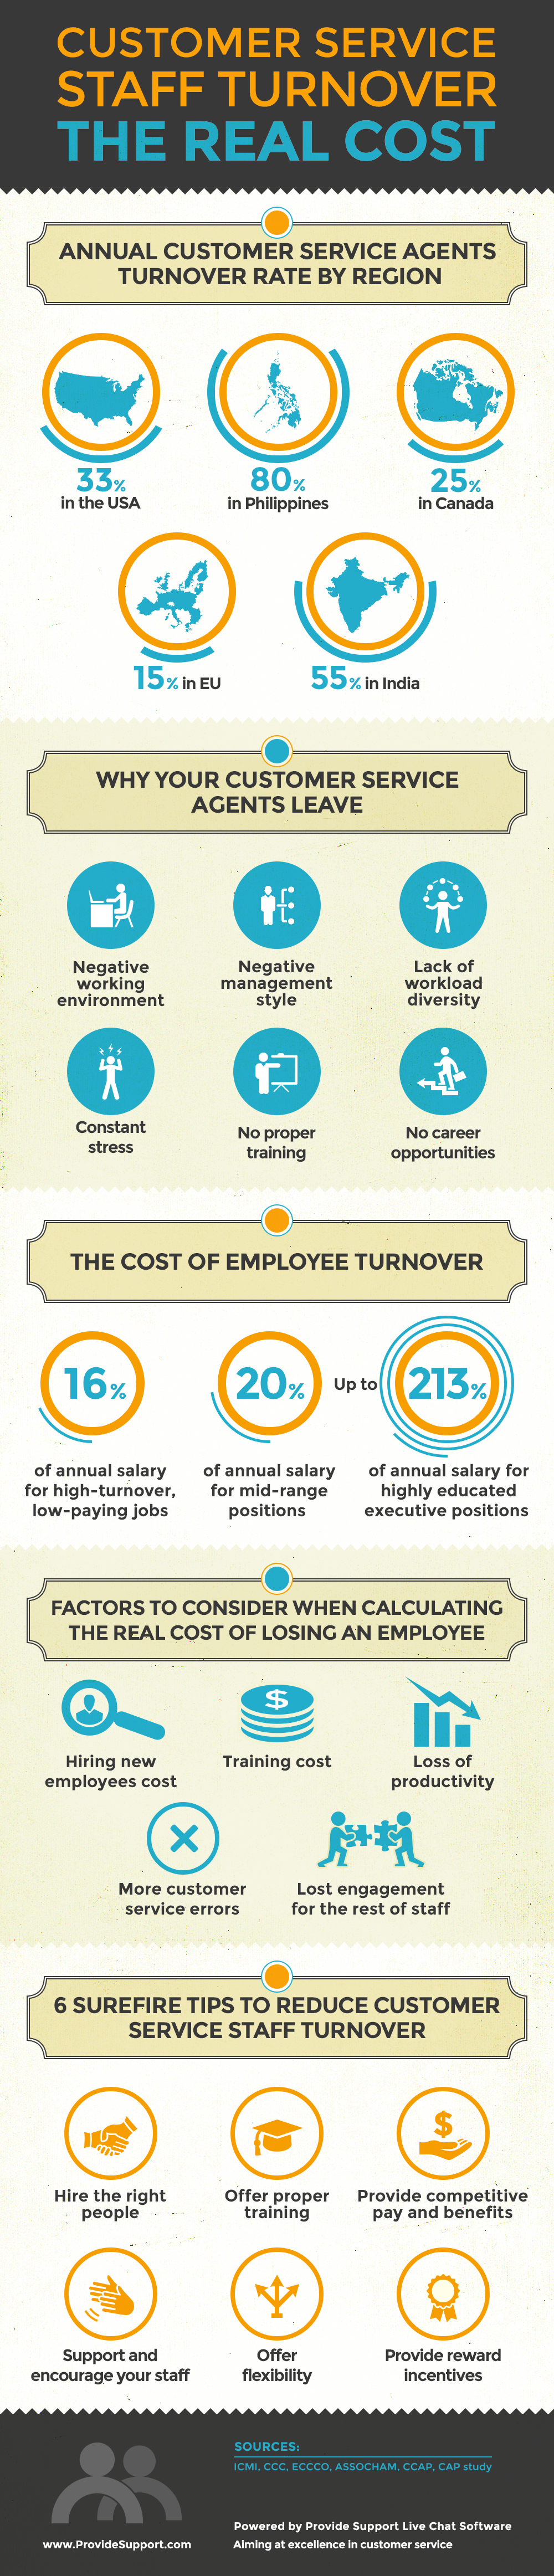 Customer Service Staff Turnover. The Real Cost [Inforgraphic from Provide Support]